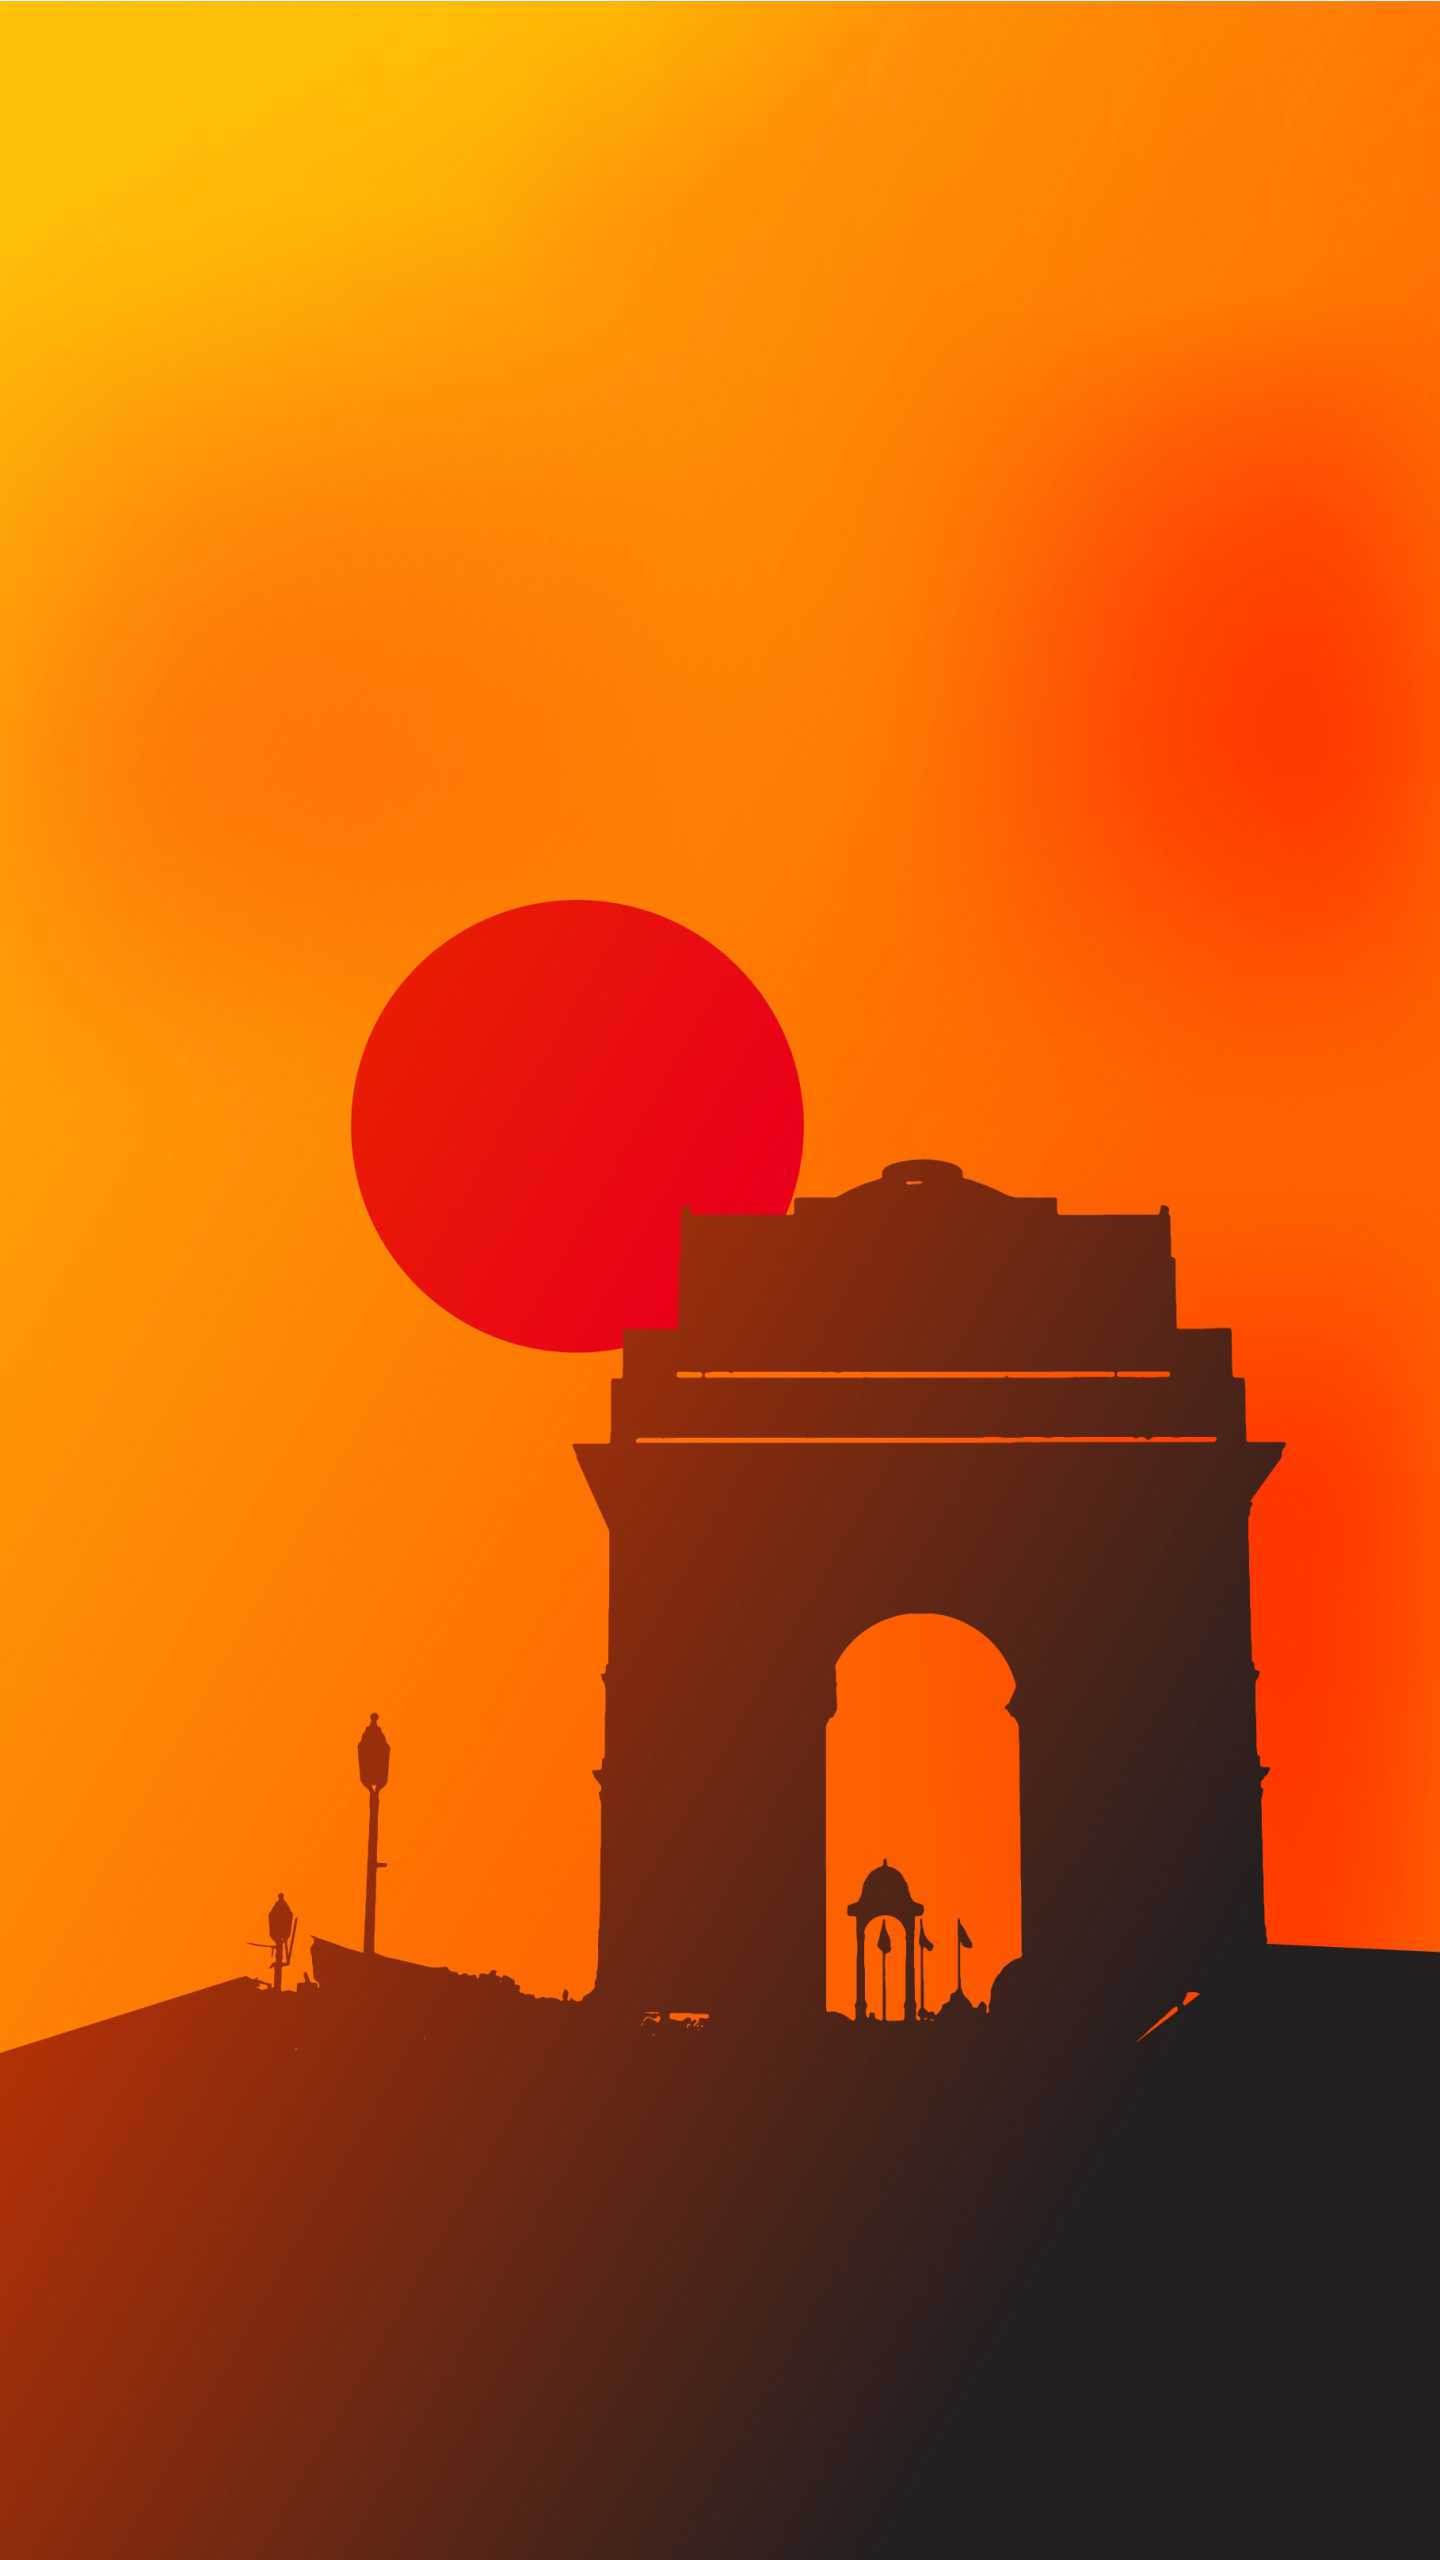 India Gate Sunset Iphone Wallpaper Iphone Wallpapers